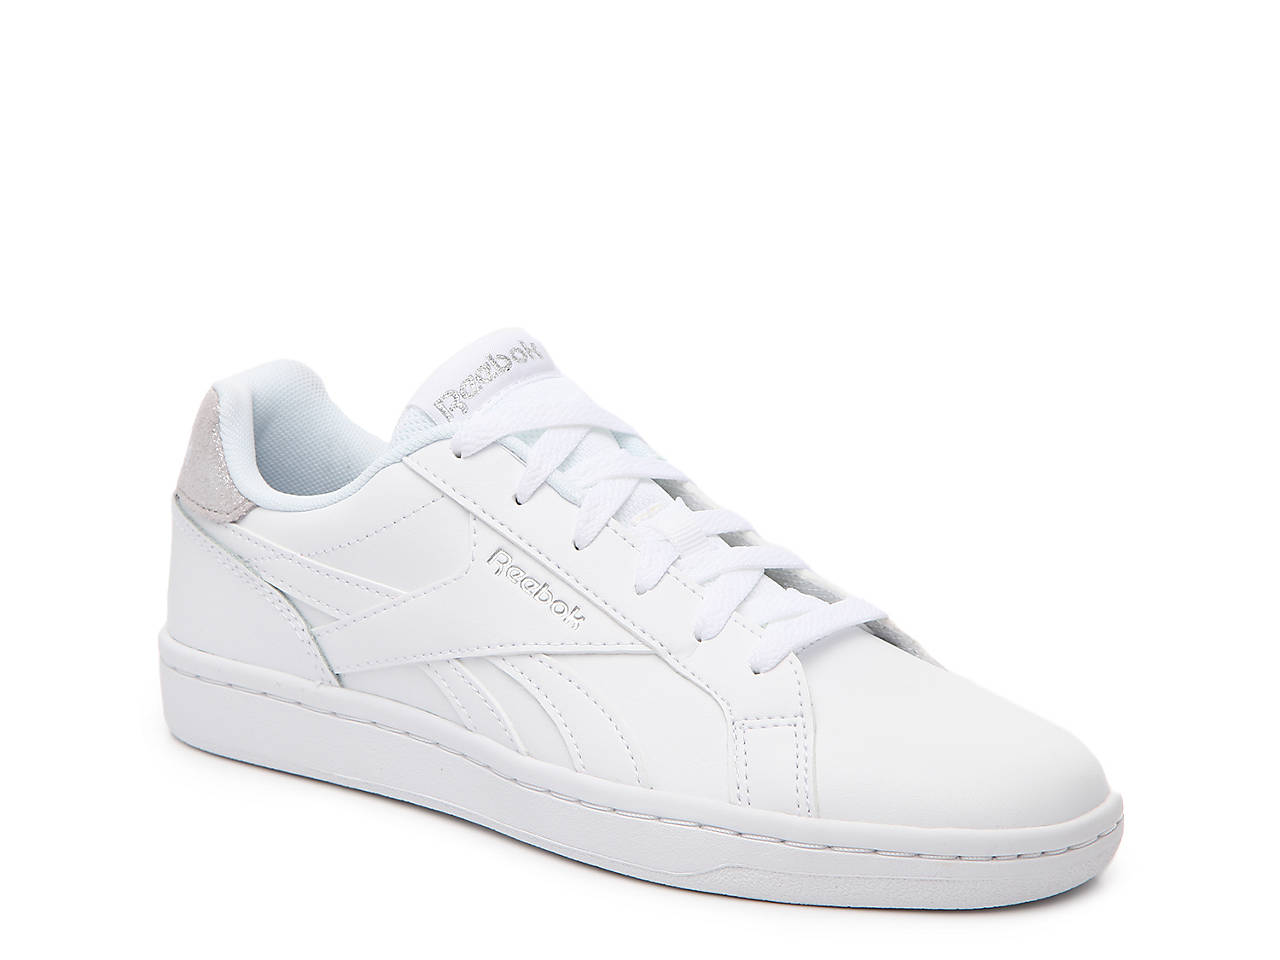 d927c429a54d Reebok Royal Complete Sneaker - Women s Women s Shoes